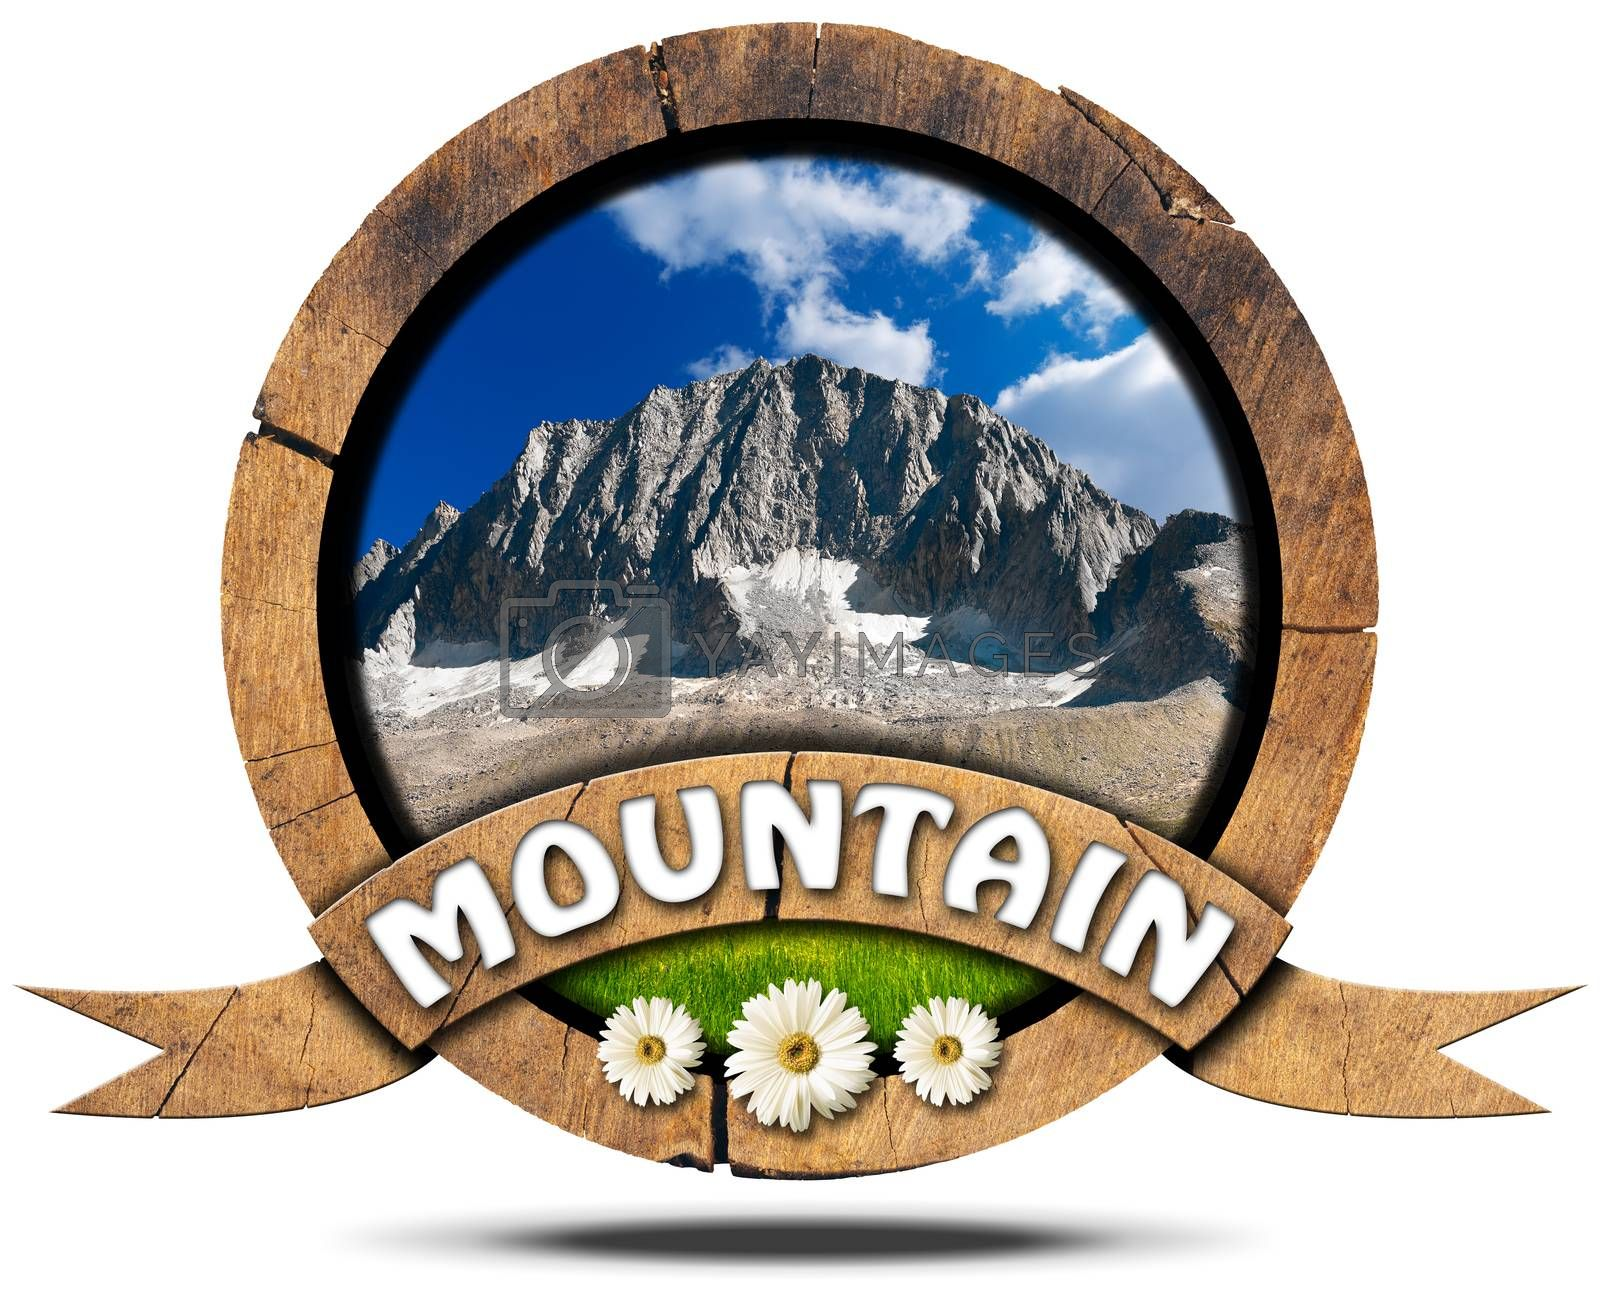 Royalty free image of Mountain - Wooden Symbol with Peak by catalby